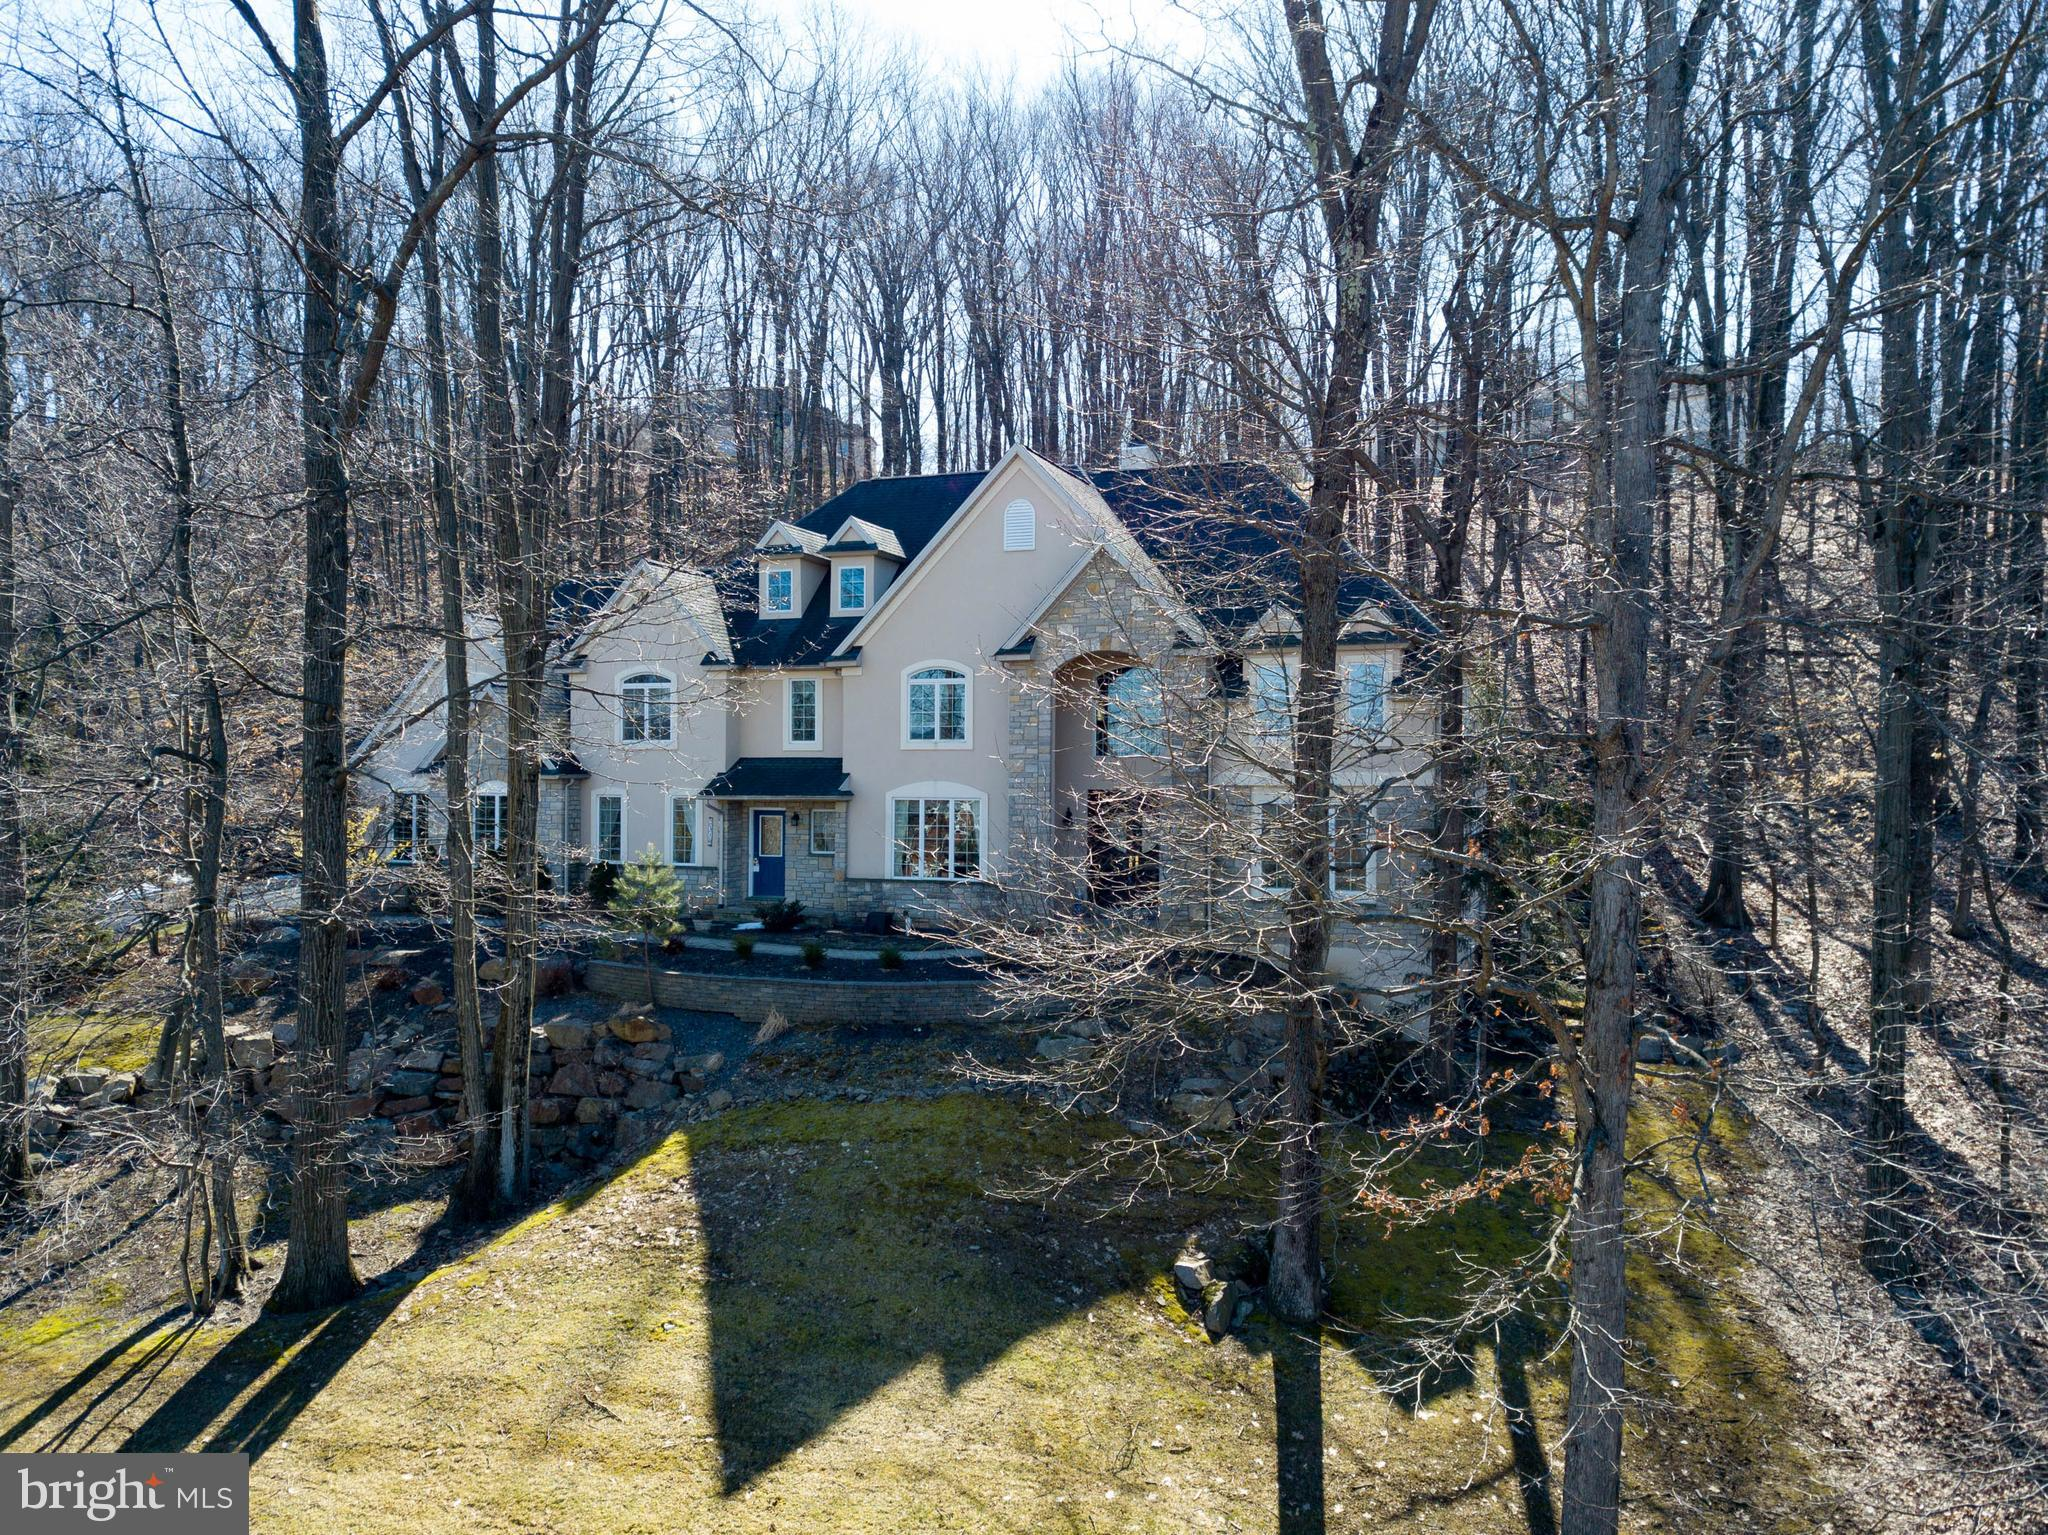 2310 BALLYBUNION ROAD, CENTER VALLEY, PA 18034